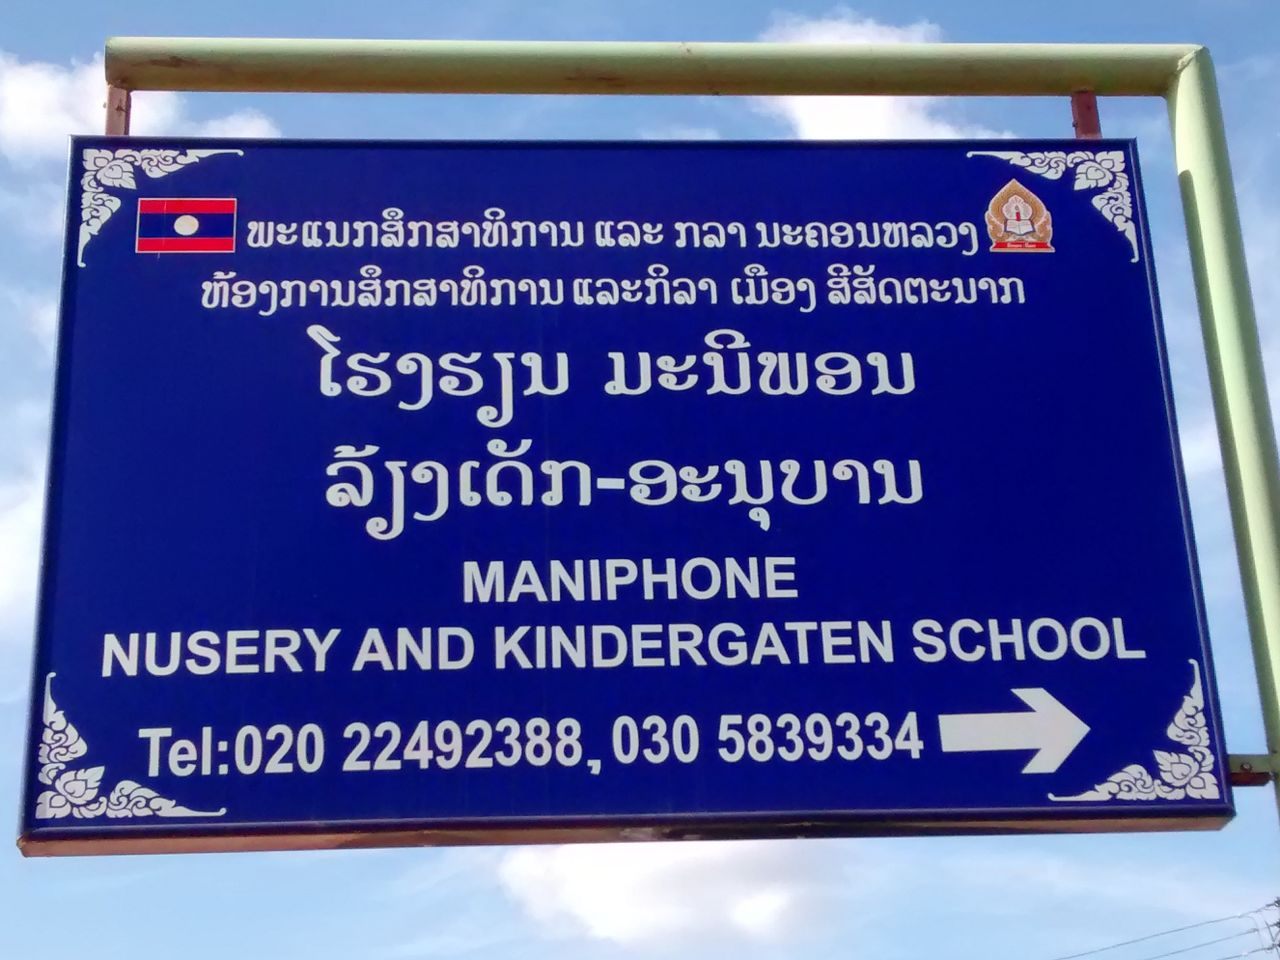 Maniphone Nusery and Kindergaten School